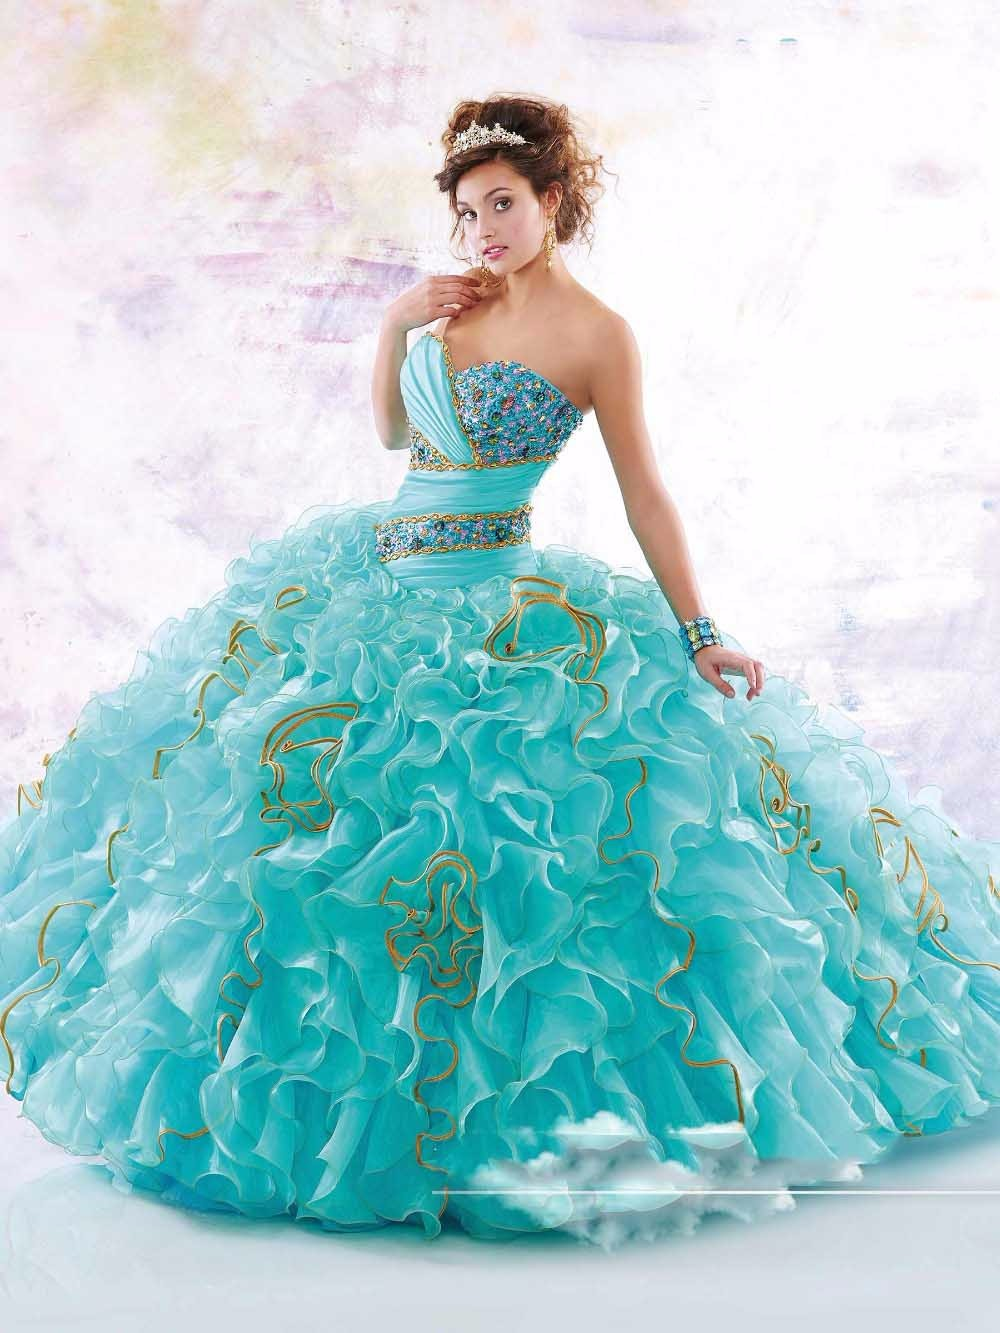 Free-Bolero-Blue-Ball-Gown-Quinceanera-Dresses-New-Sparkling-Beads-Crystal-Organza-Prom-Dresses-15-Years (1)